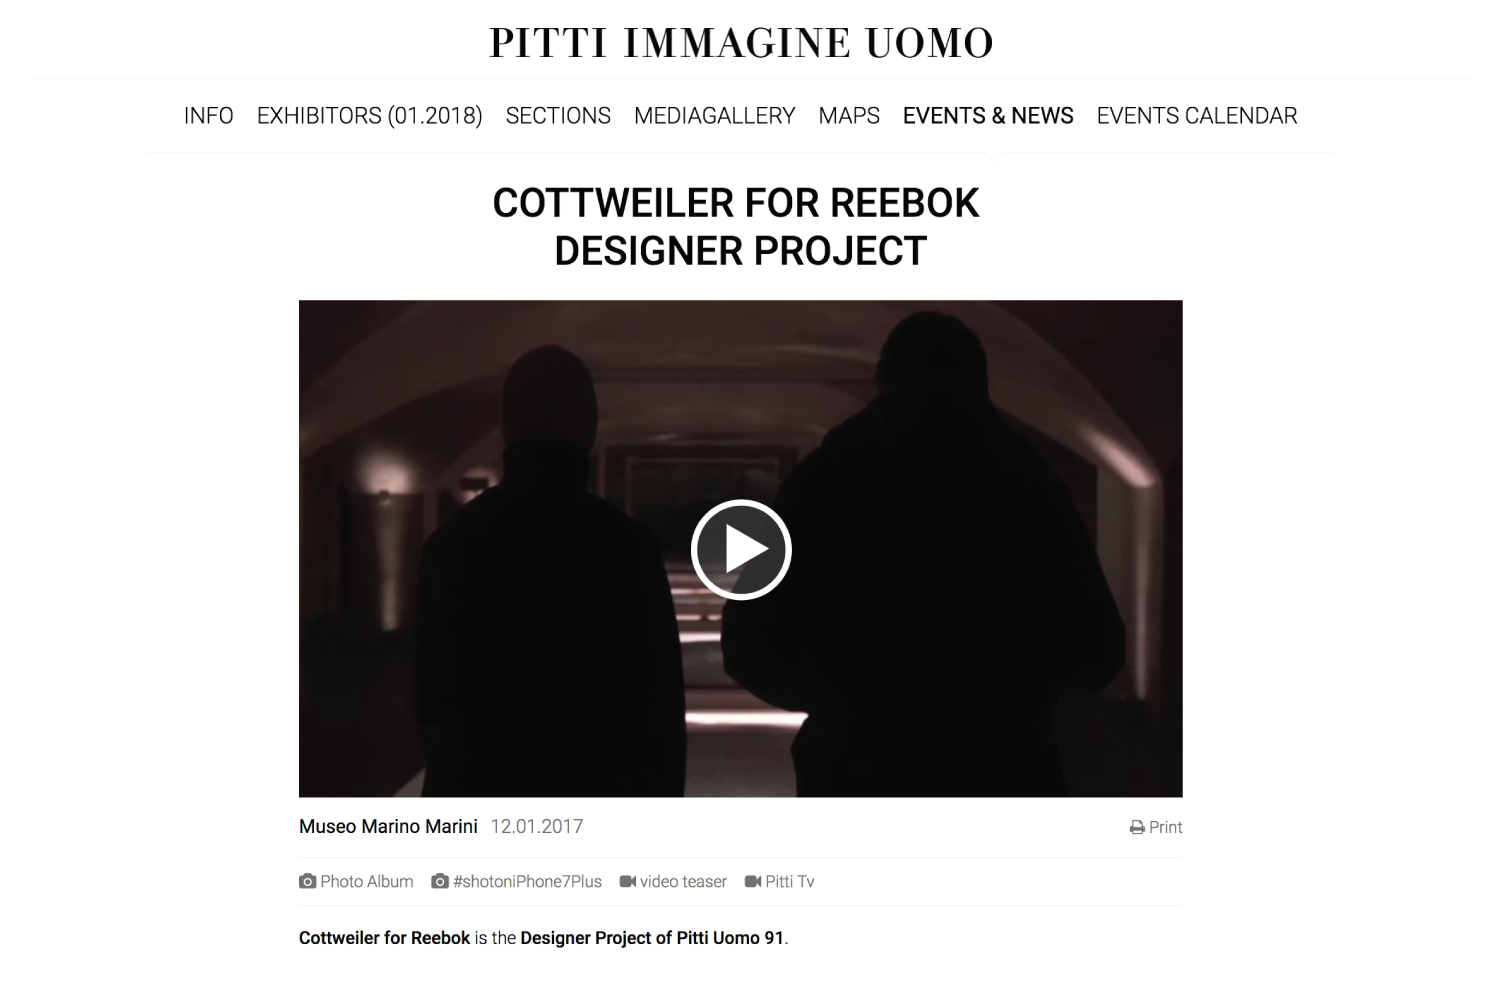 PITTI UOMO | Cottweiler for Reebok Designer Project, January 12, 2017